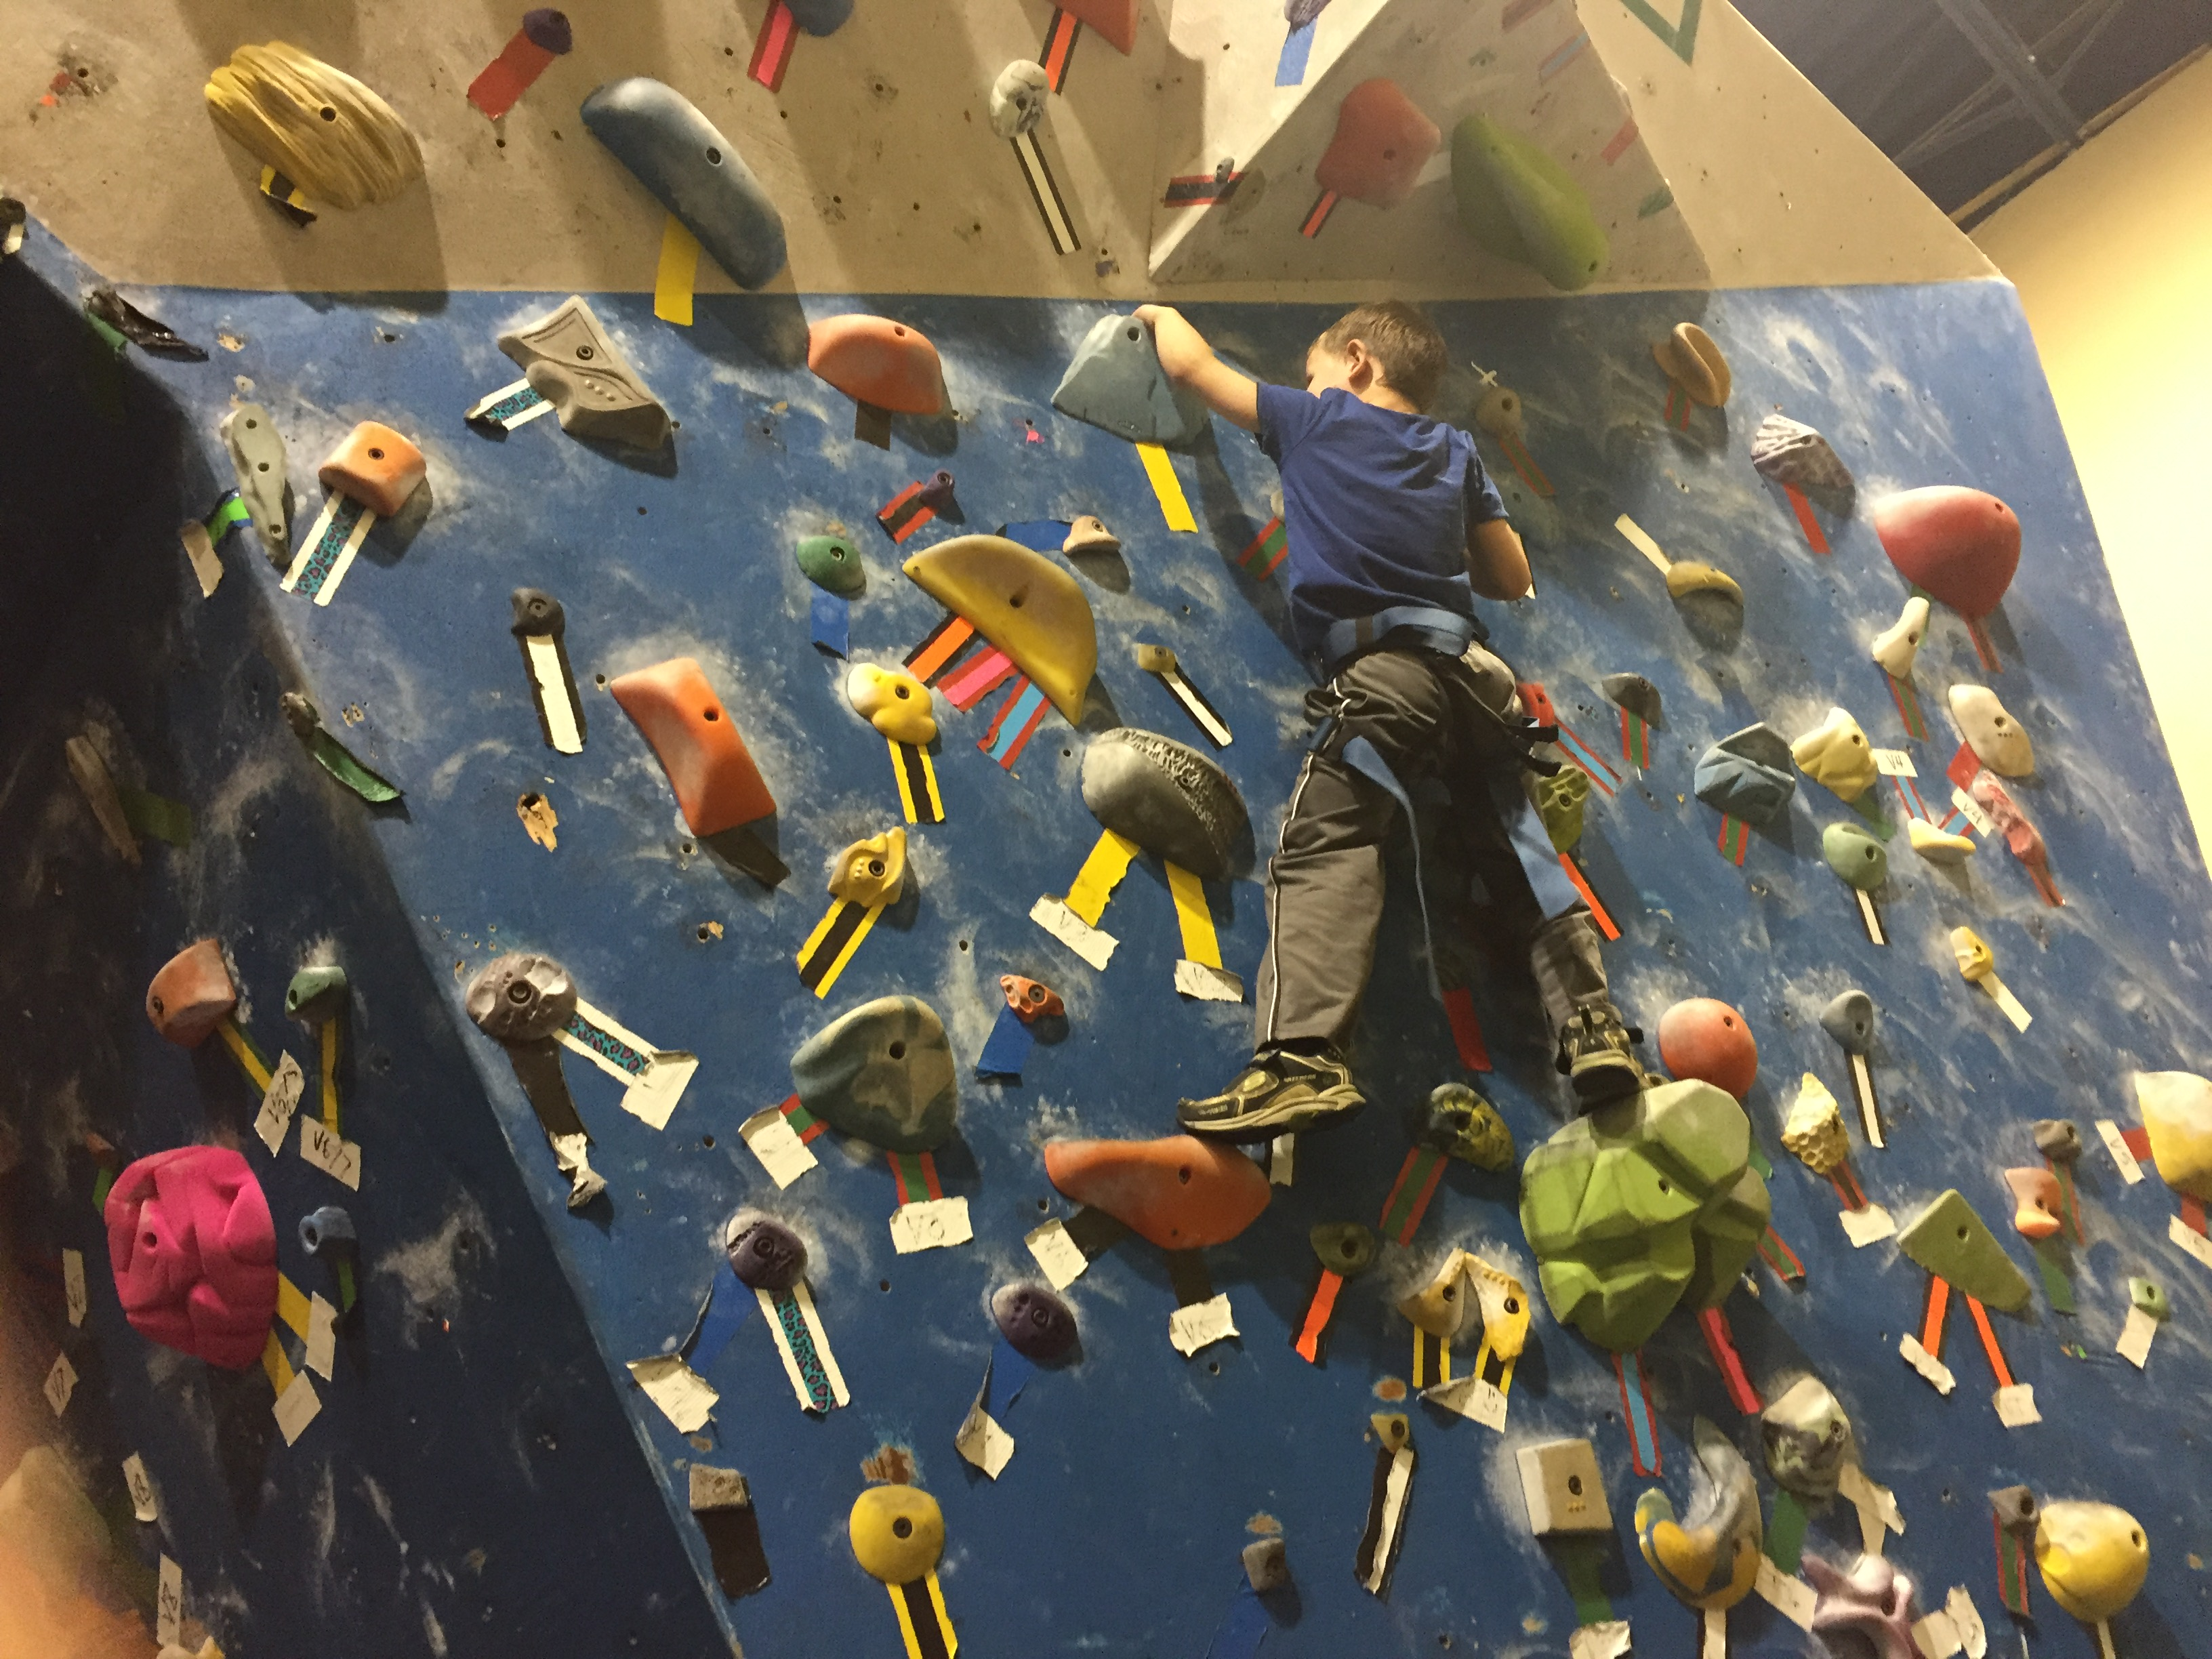 Boy Rock Climbing and Project Climbing in Abbotsford with #ExploreBCbyBus